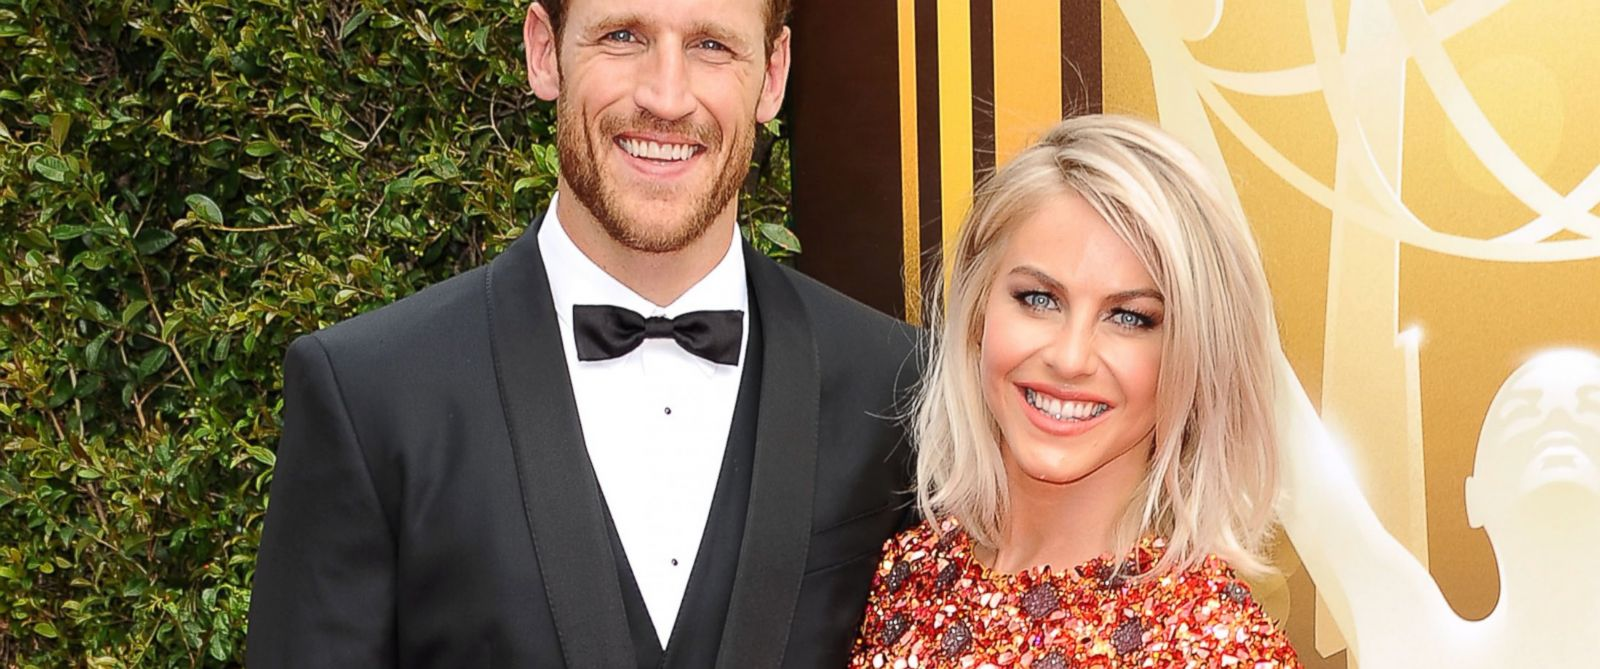 PHOTO: Brooks Laich and Julianne Hough attend the 2015 Creative Arts Emmy Awards at Microsoft Theater, Sept. 12, 2015, in Los Angeles.